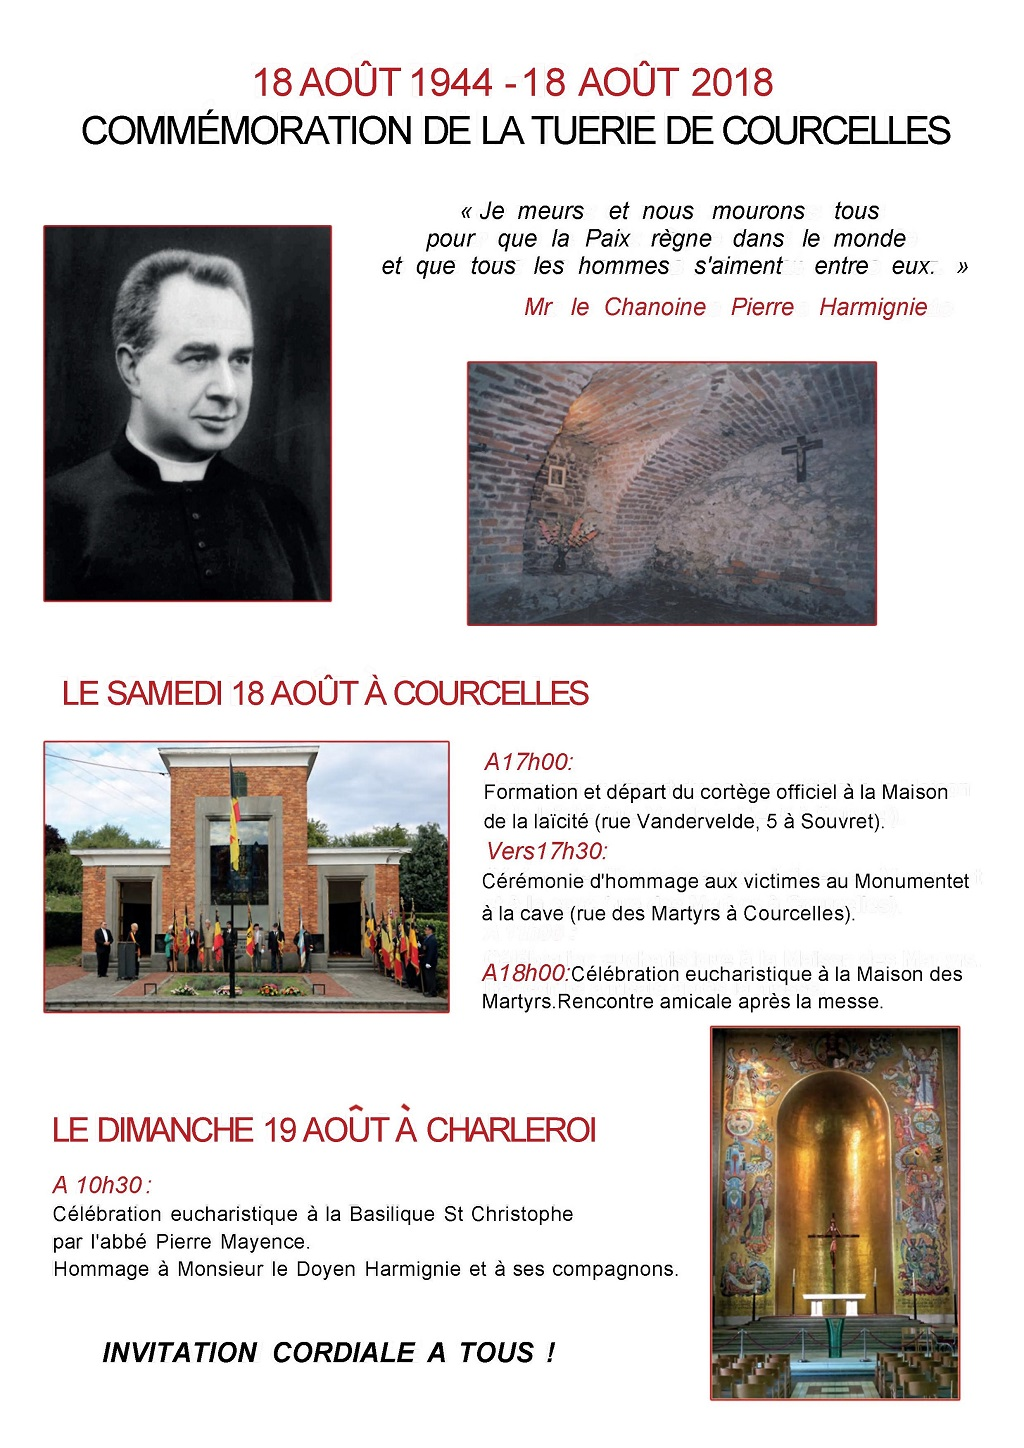 Affiche commemoration courcelles